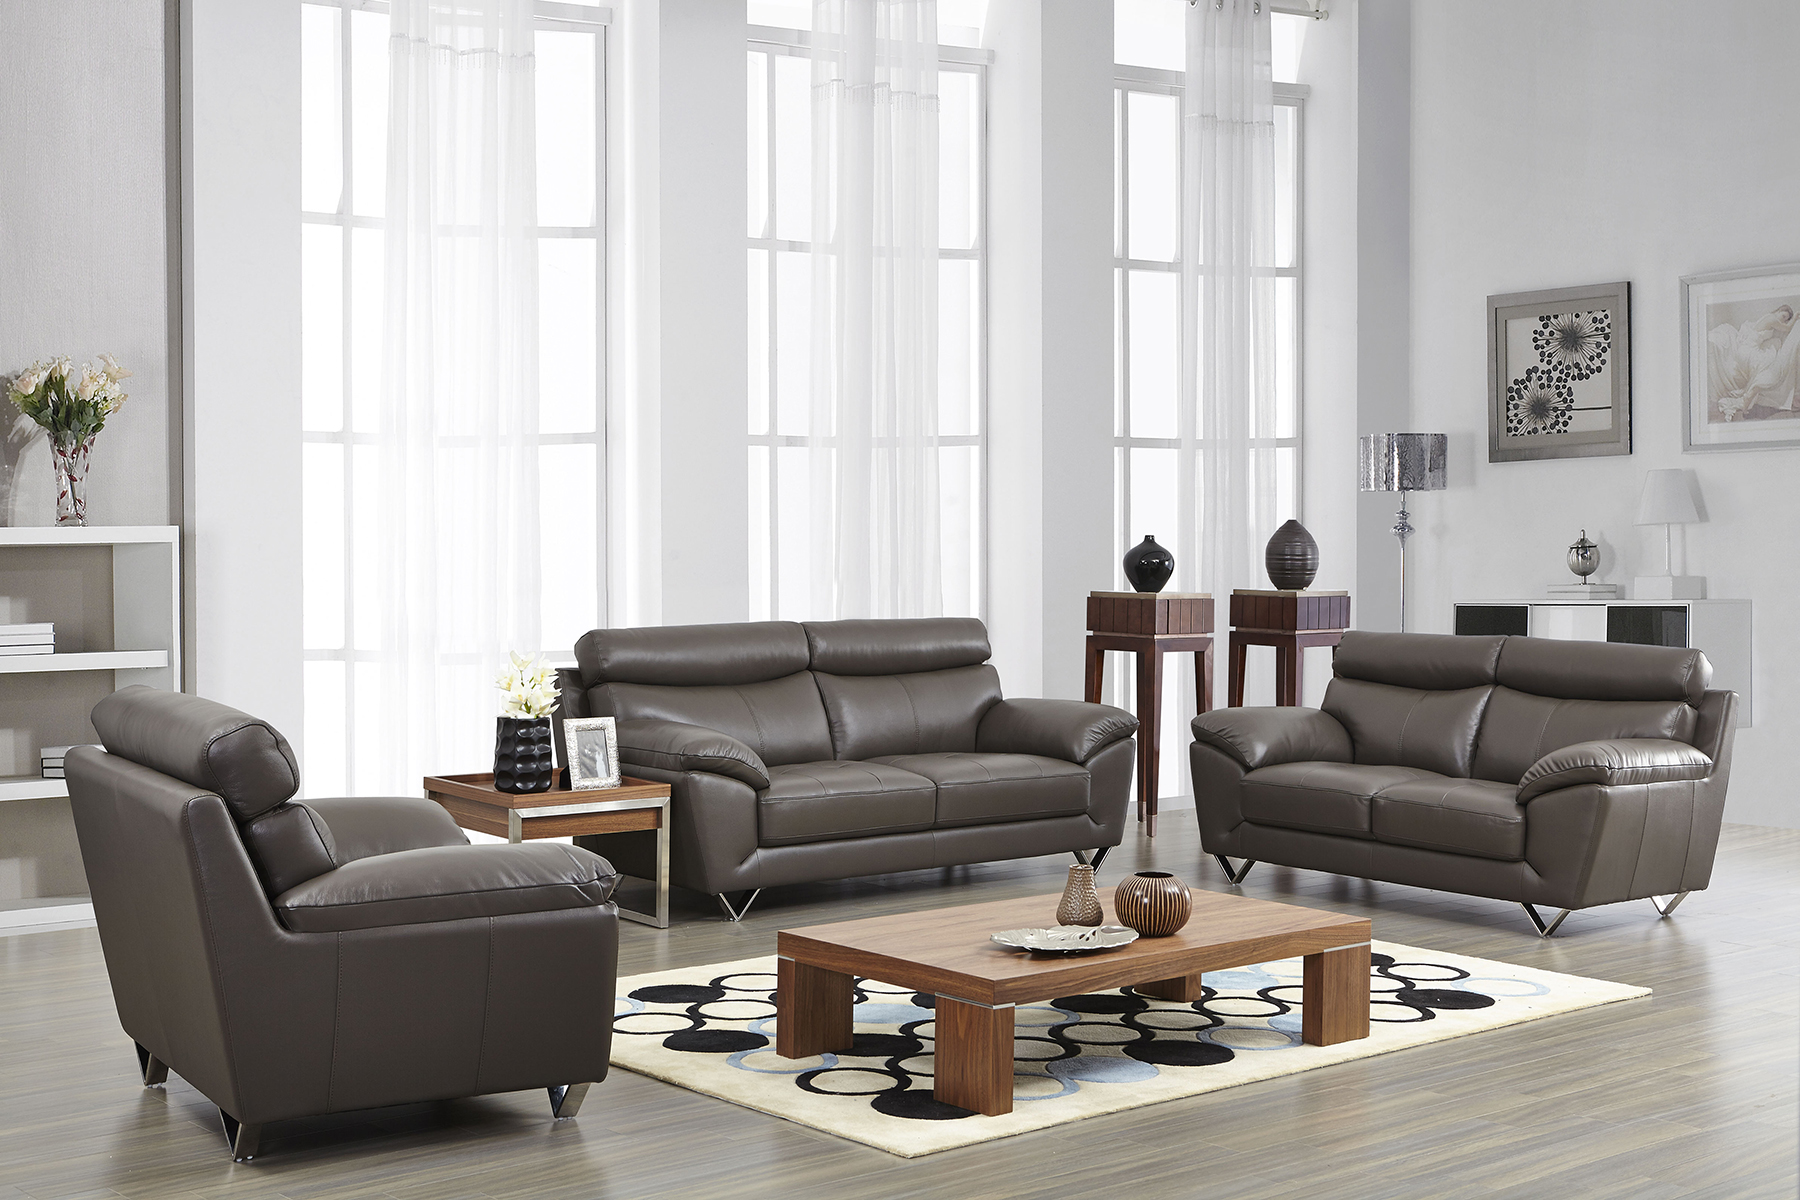 leather living room contemporary stylish leather 3pc sofa set with chrome legs 10273